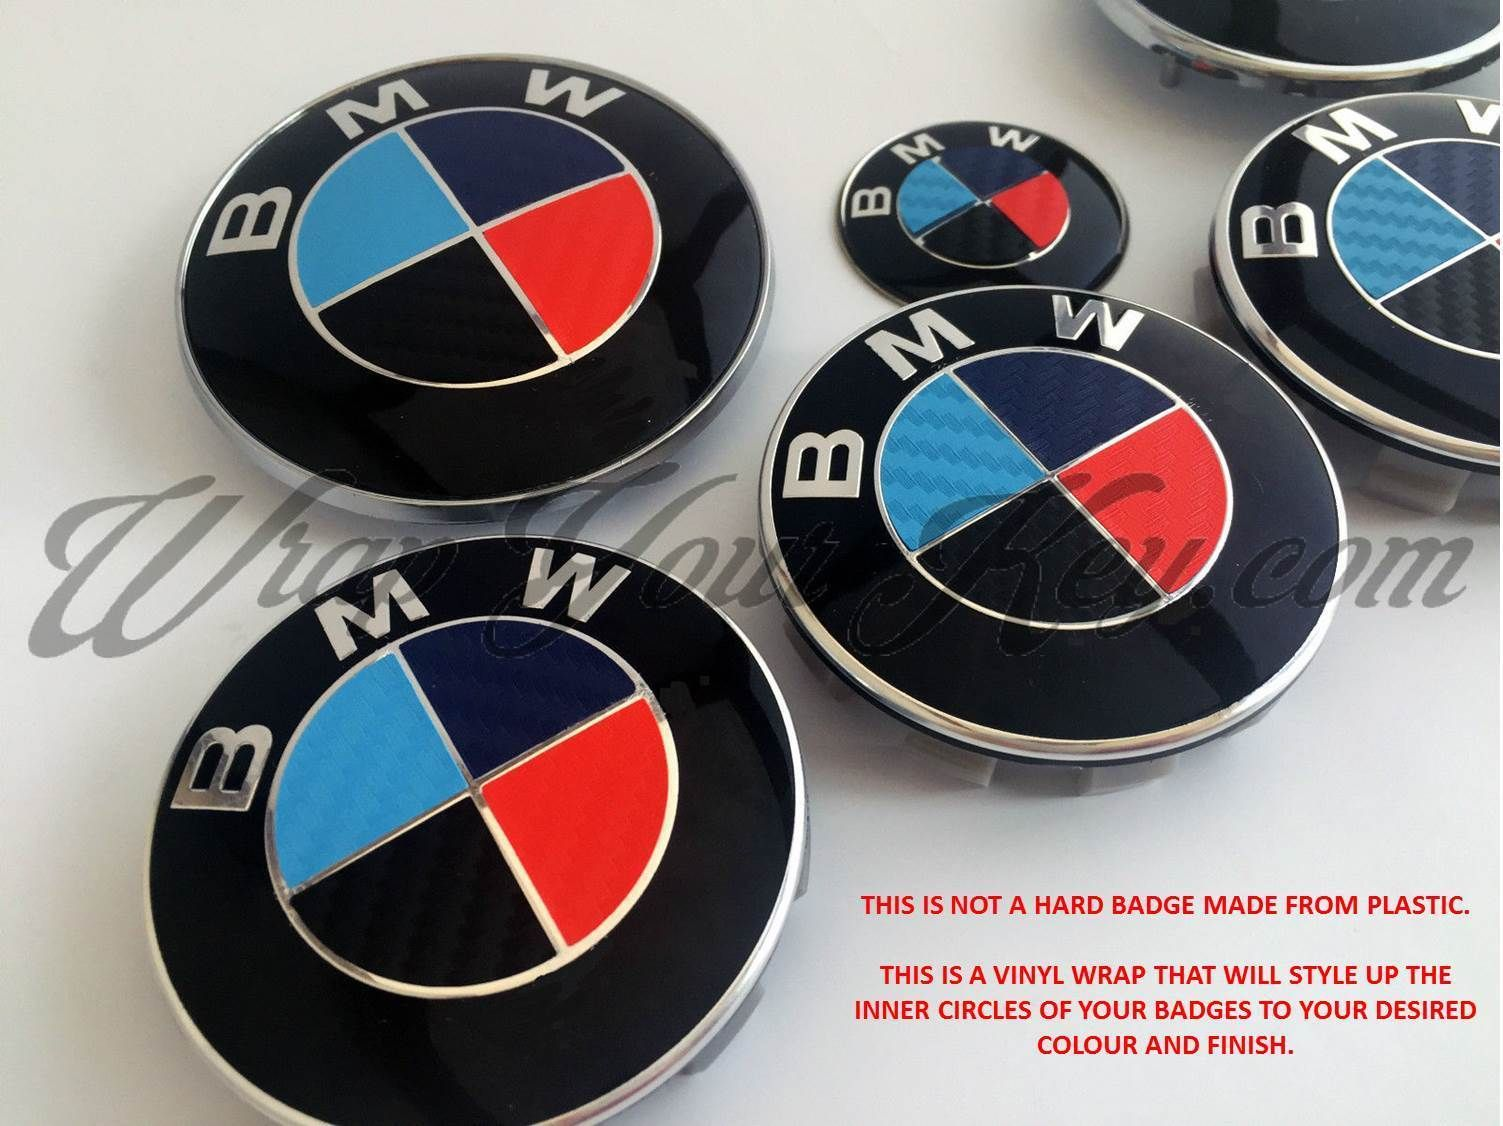 BLACK BLUE RED M SPORT BMW Badge Emblem Overlay HOOD TRUNK RIMS.